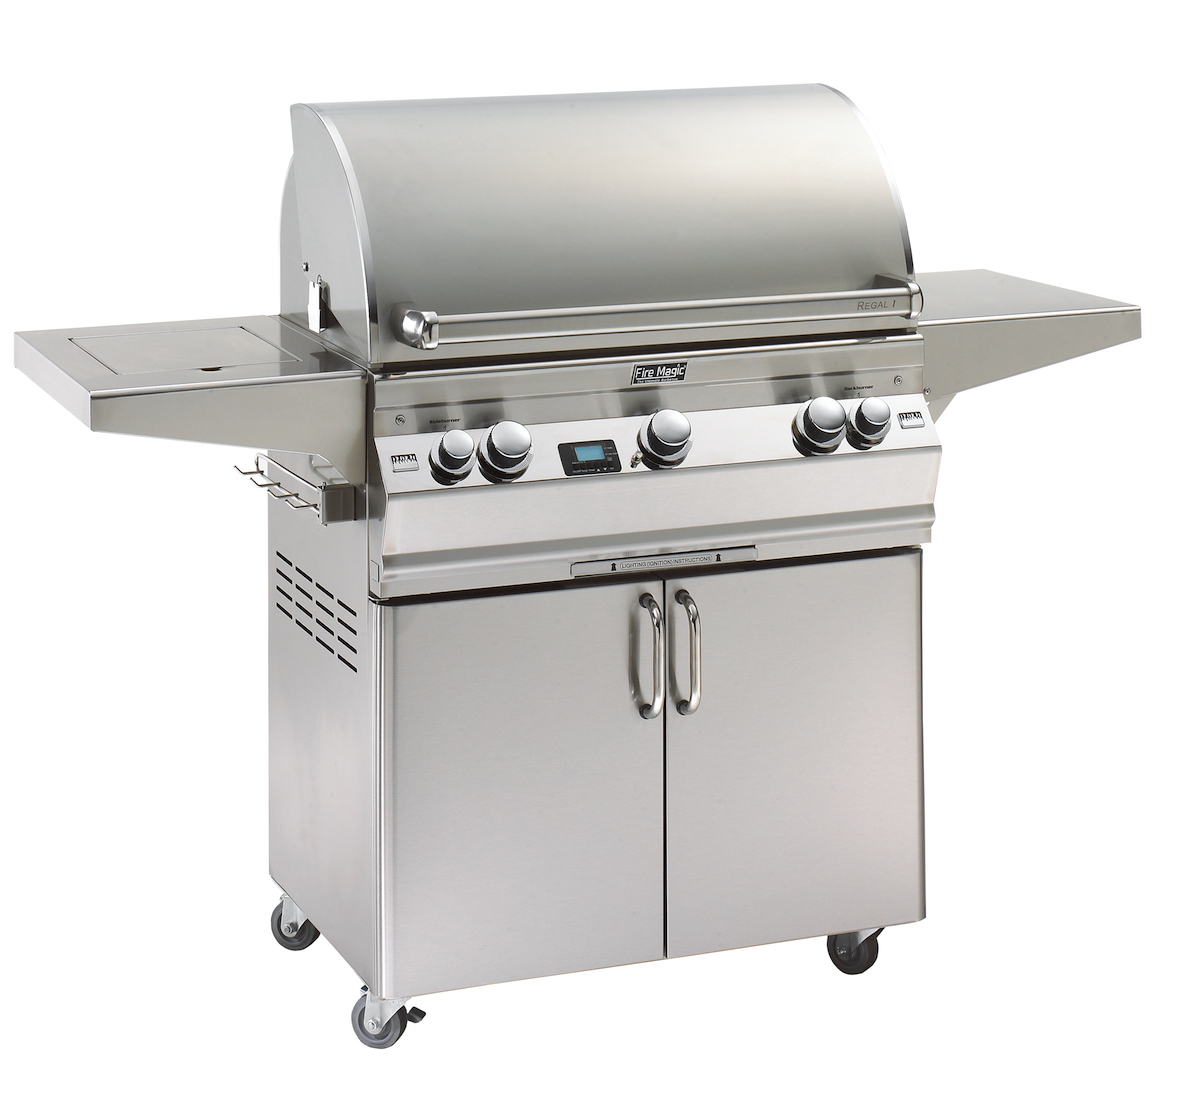 Fire magic aurora 540s kaufen grill concept for Outdoorkuche mit gasgrill